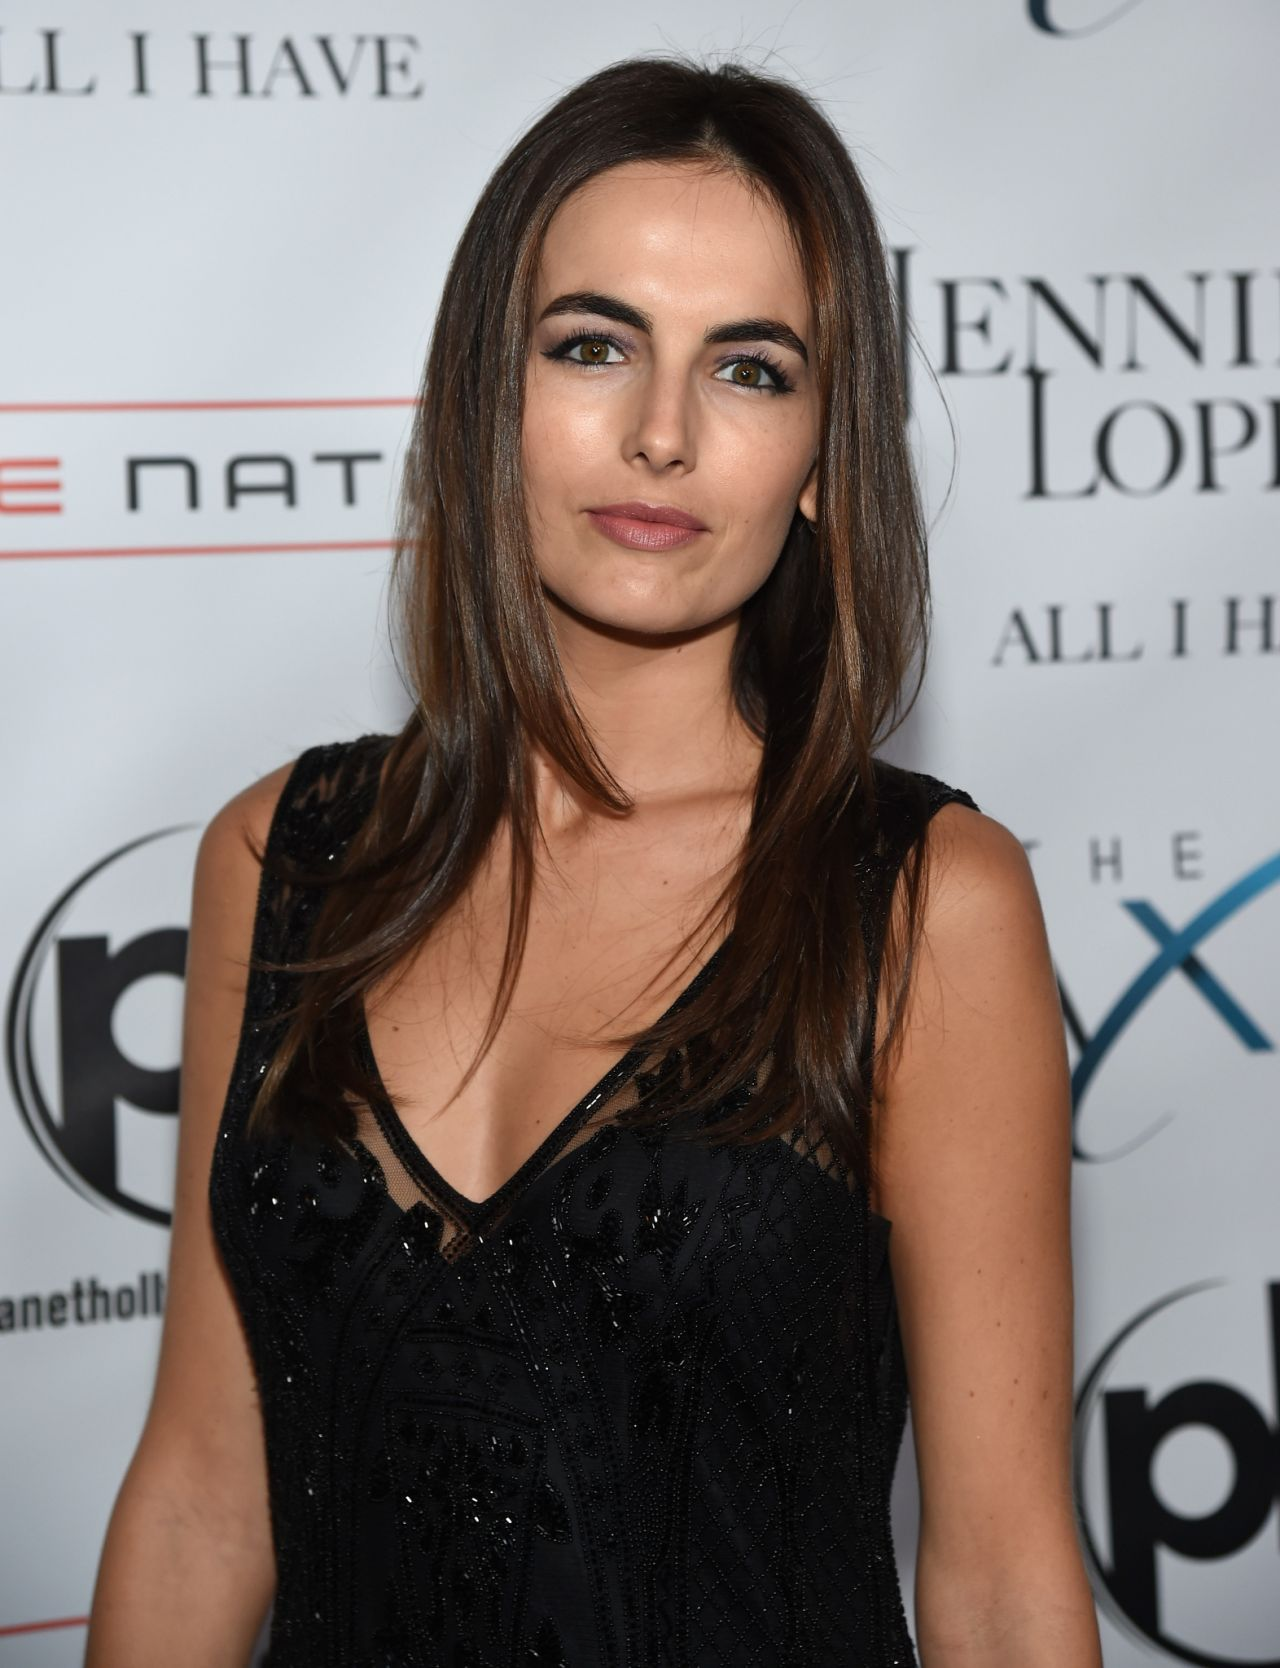 camilla-belle-jennifer-lopez-all-i-have-residency-launch-in-las-vegas-january-20-2016-5